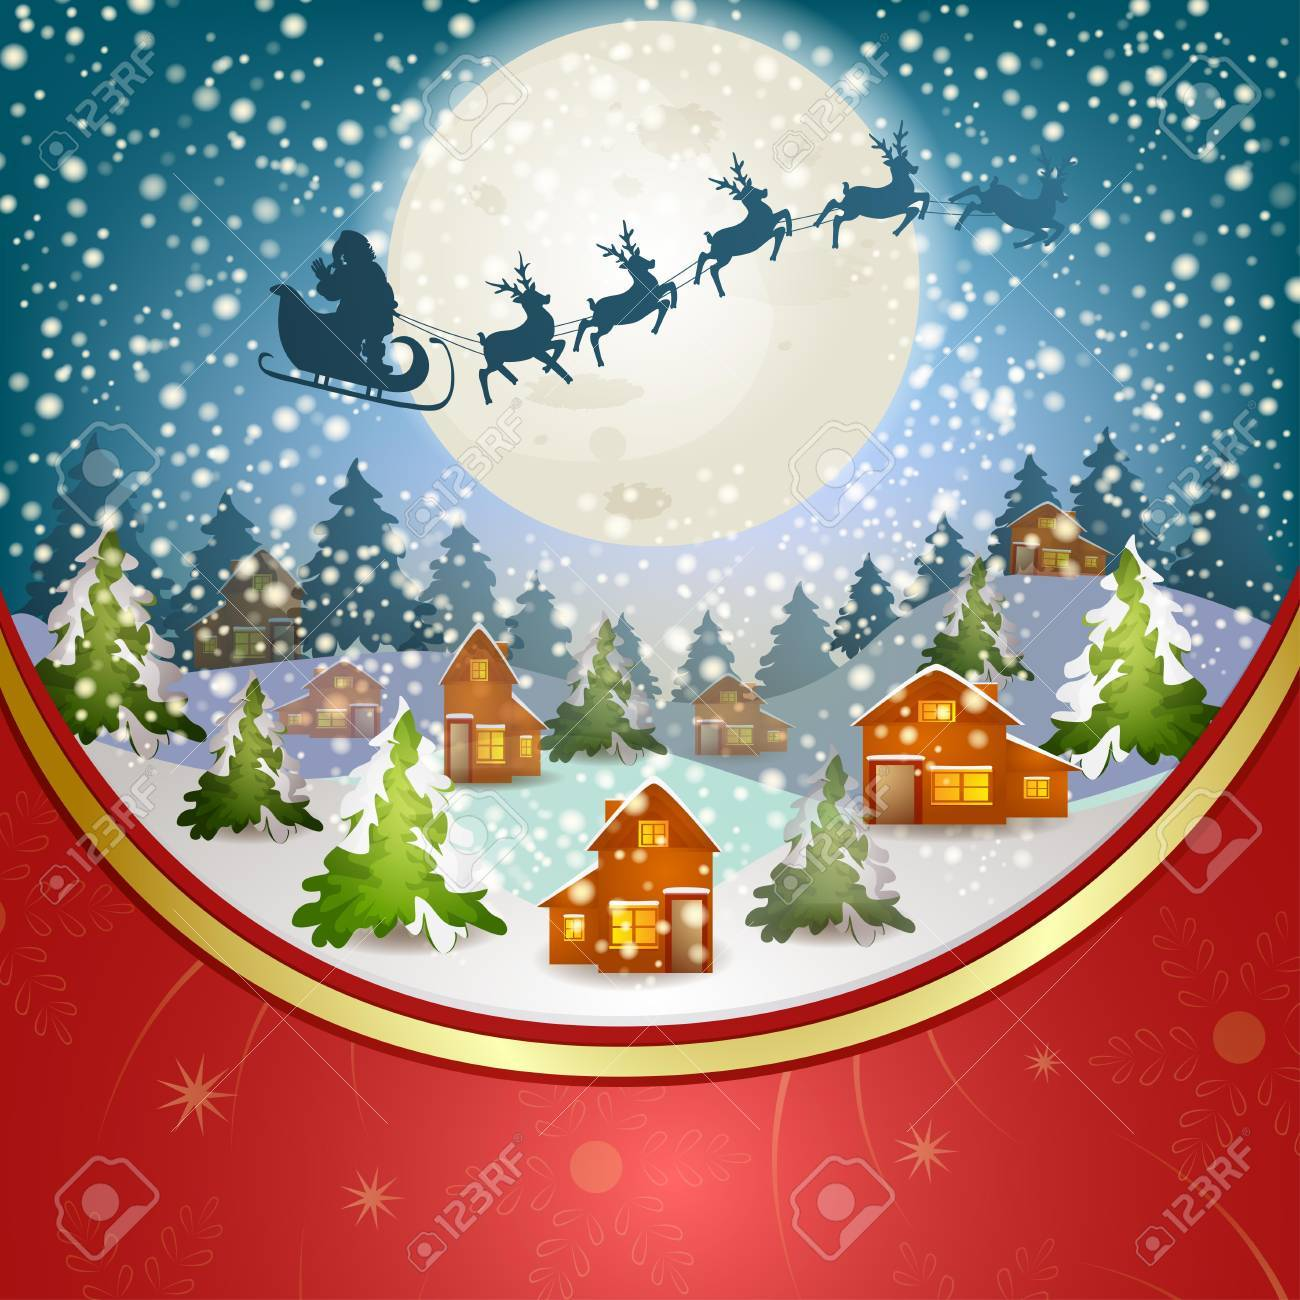 Winter landscape with Santa Claus s sleigh flying on the sky Stock Vector - 16658839